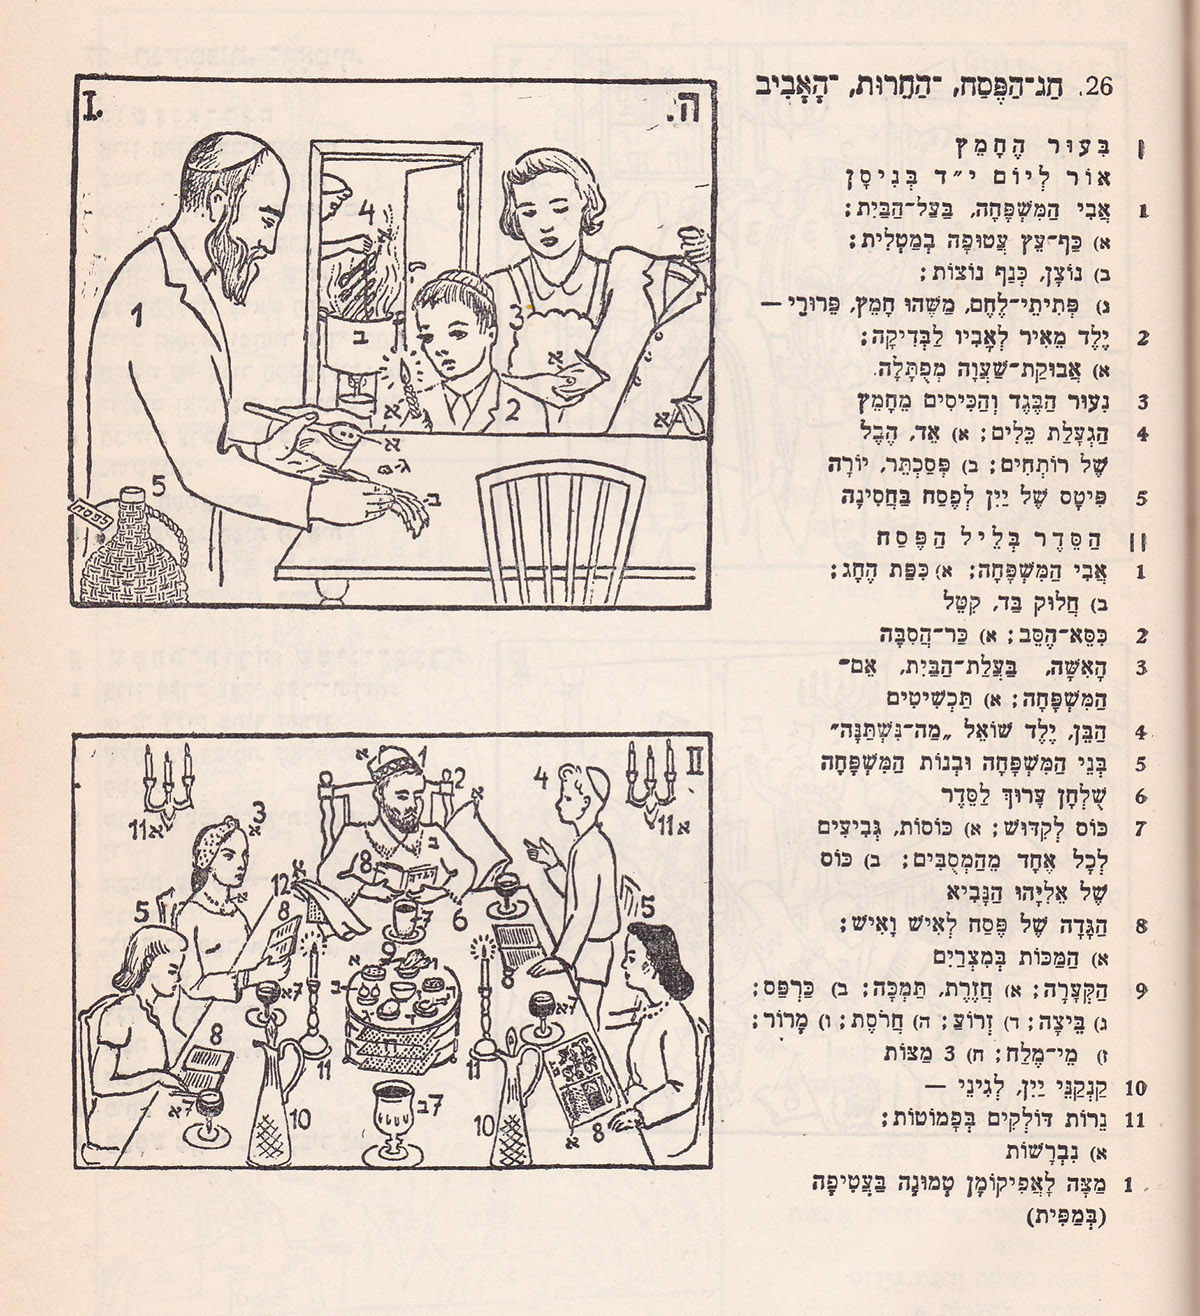 Ettinger Hebrew English Pictorial Dictionary